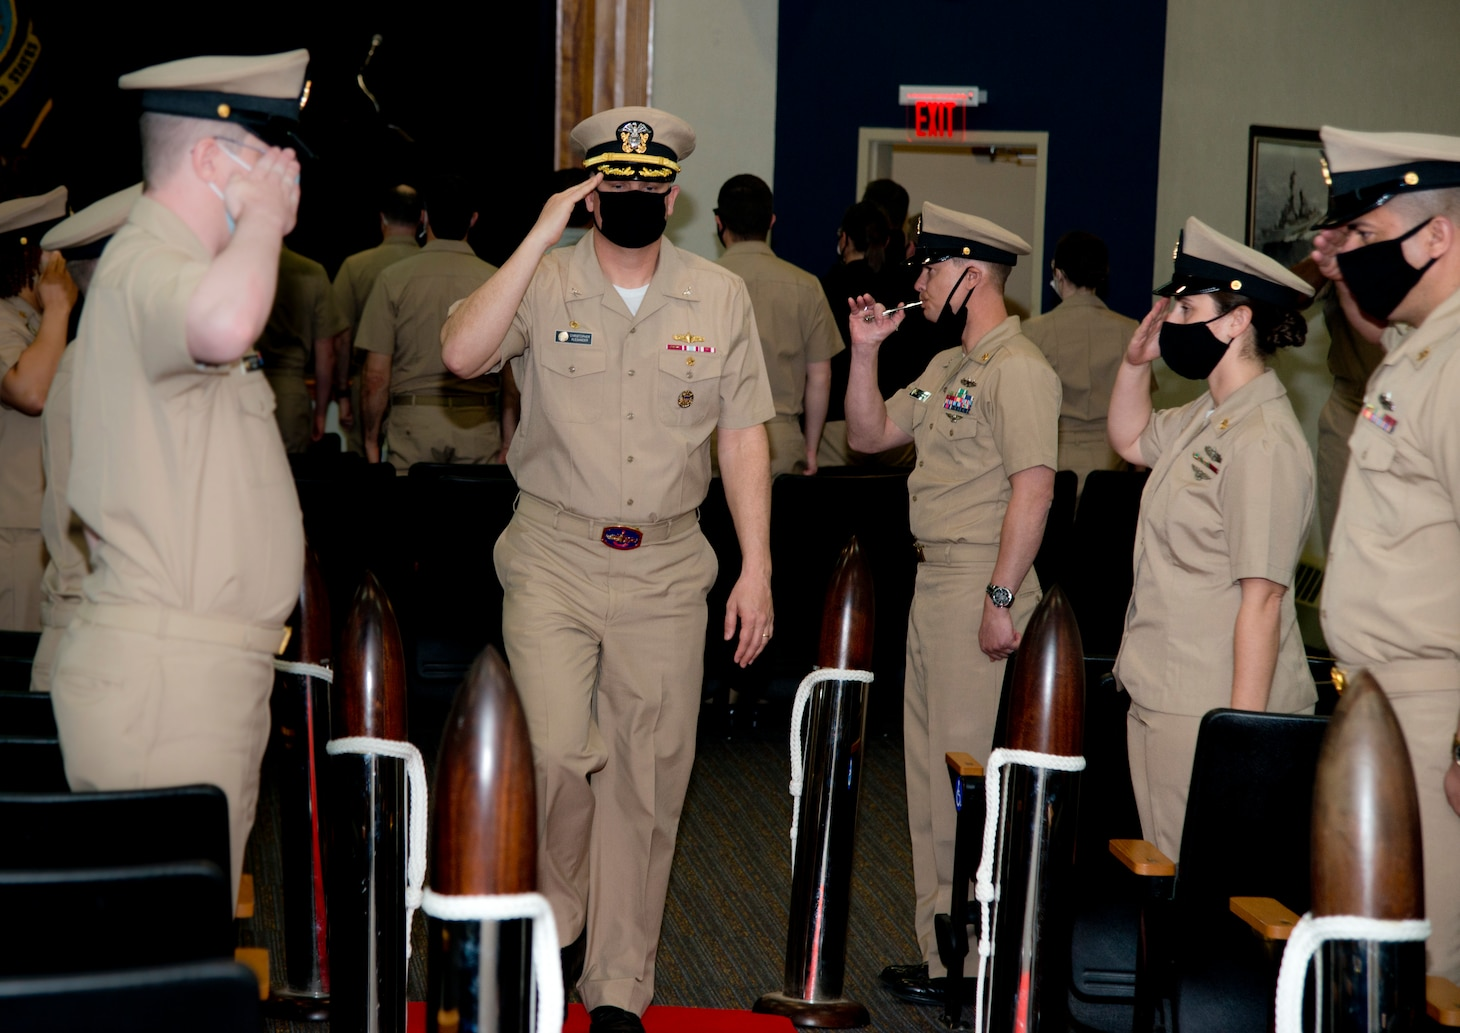 NEWPORT, R.I. (April 22, 2021) Capt. Christopher Alexander passes through sideboys during the Surface Warfare Schools Command  (SWSC) change of command ceremony at Naval Station (NAVSTA) Newport R.I., April 22, 2021. During the ceremony, Alexander was relieved by Capt. Alexis Walker as SWSC's commanding officer. (U.S. Navy photo by Mass Communication Specialist 2nd Class Derien C. Luce)